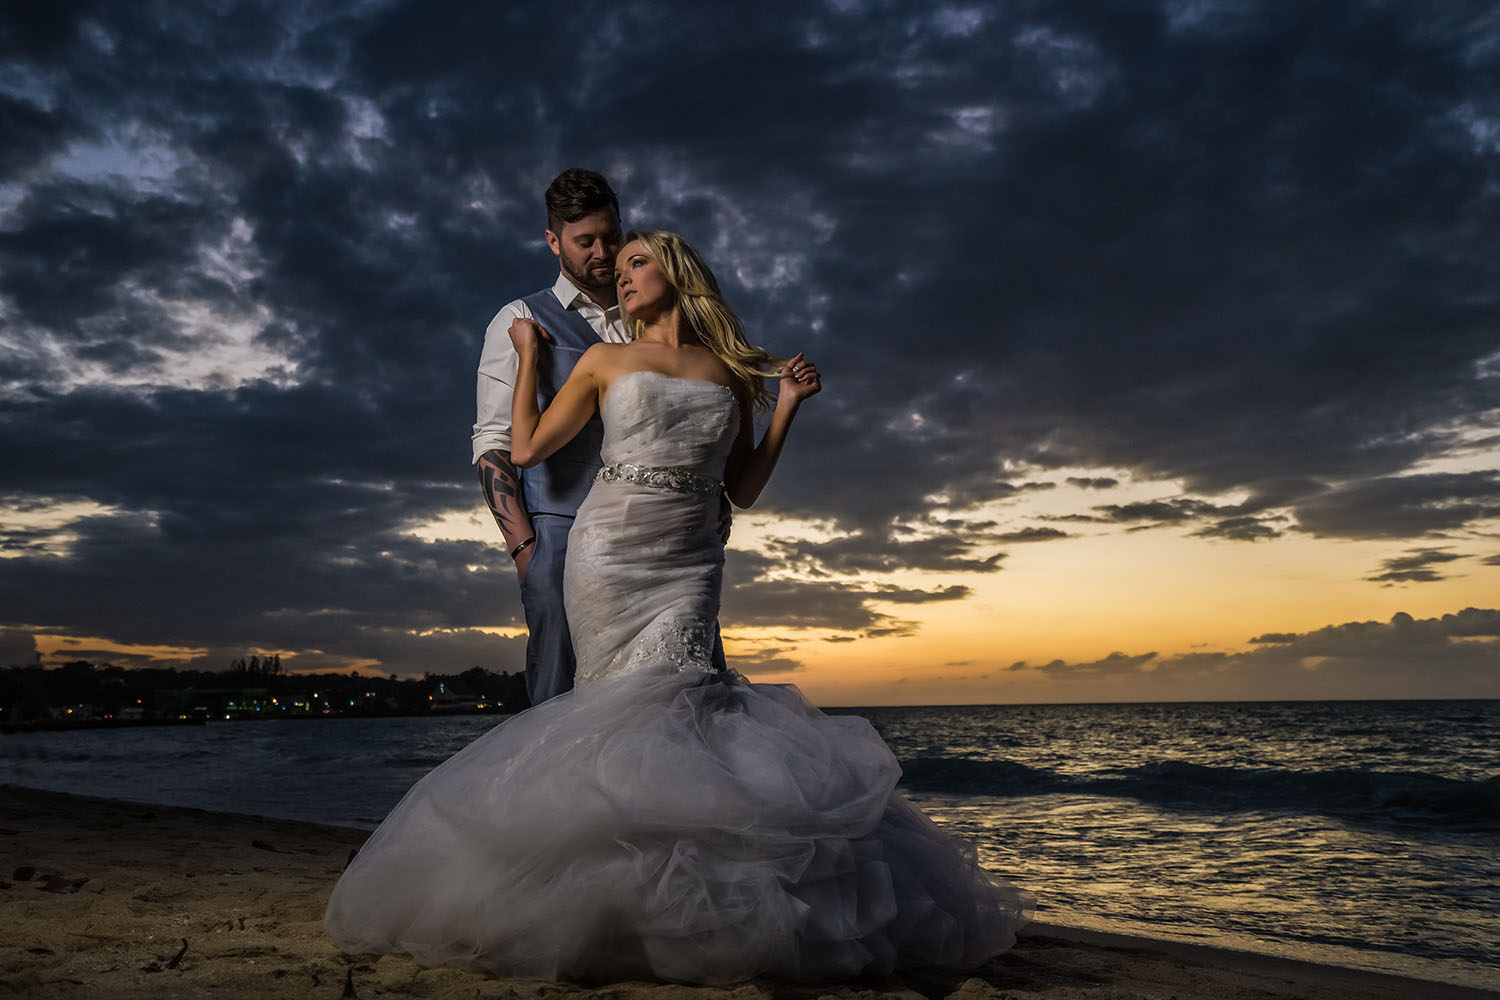 The beach can provide a dramatic piece of wedding photography.